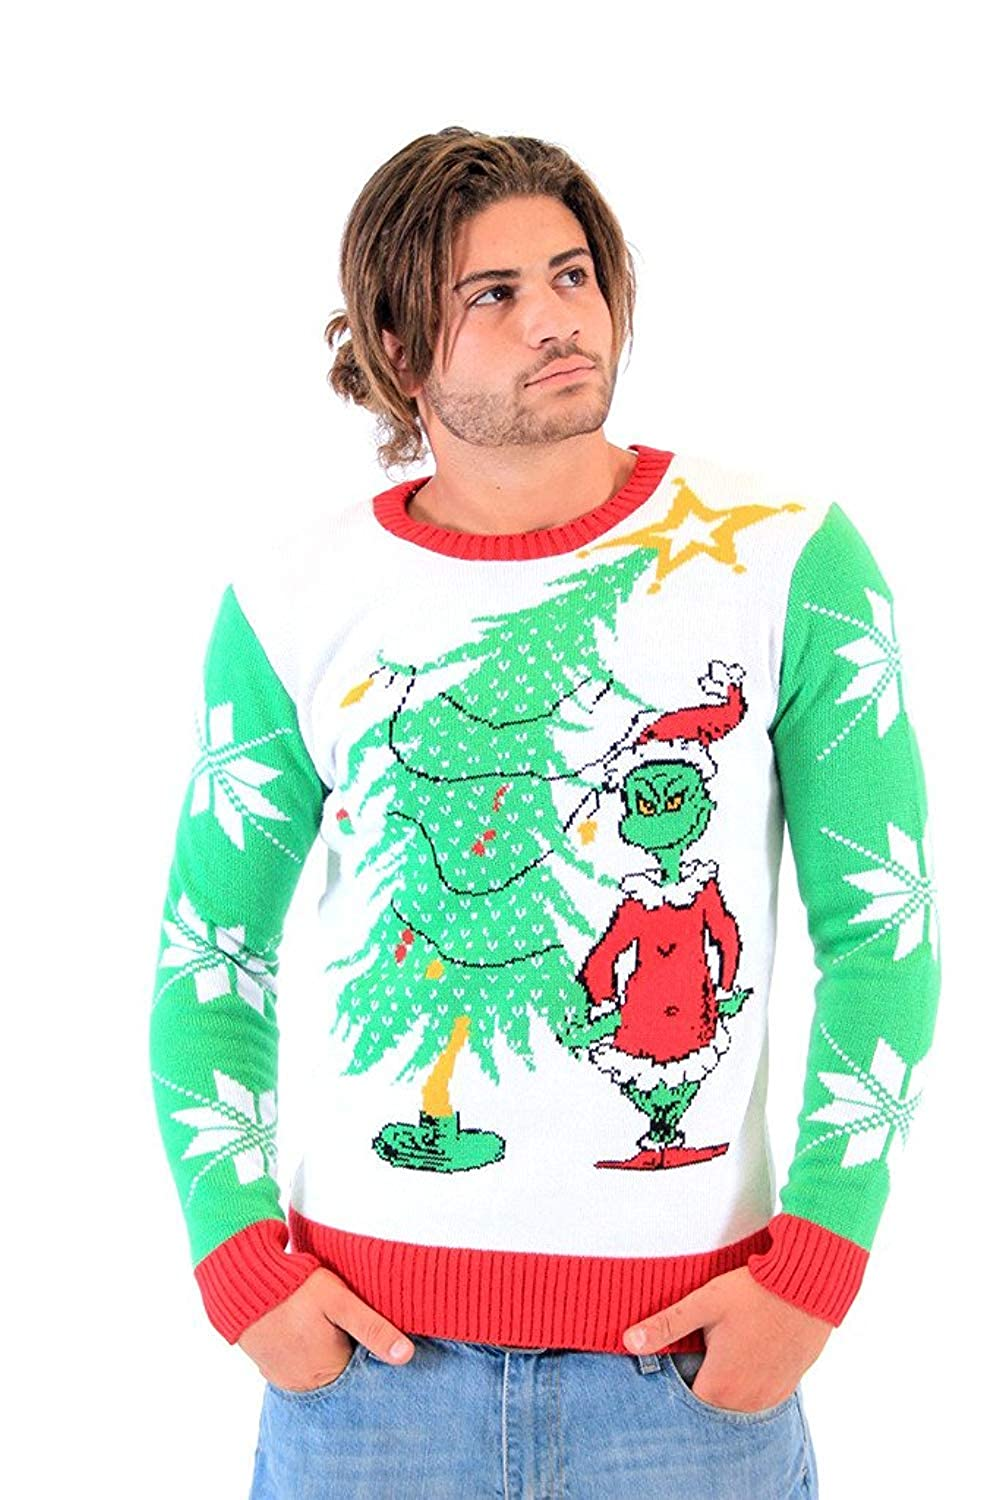 acdc9b8c2e Amazon.com  Dr. Seuss Grinch As Santa Next to Tree Adult Off-White Ugly  Christmas Sweater  Clothing